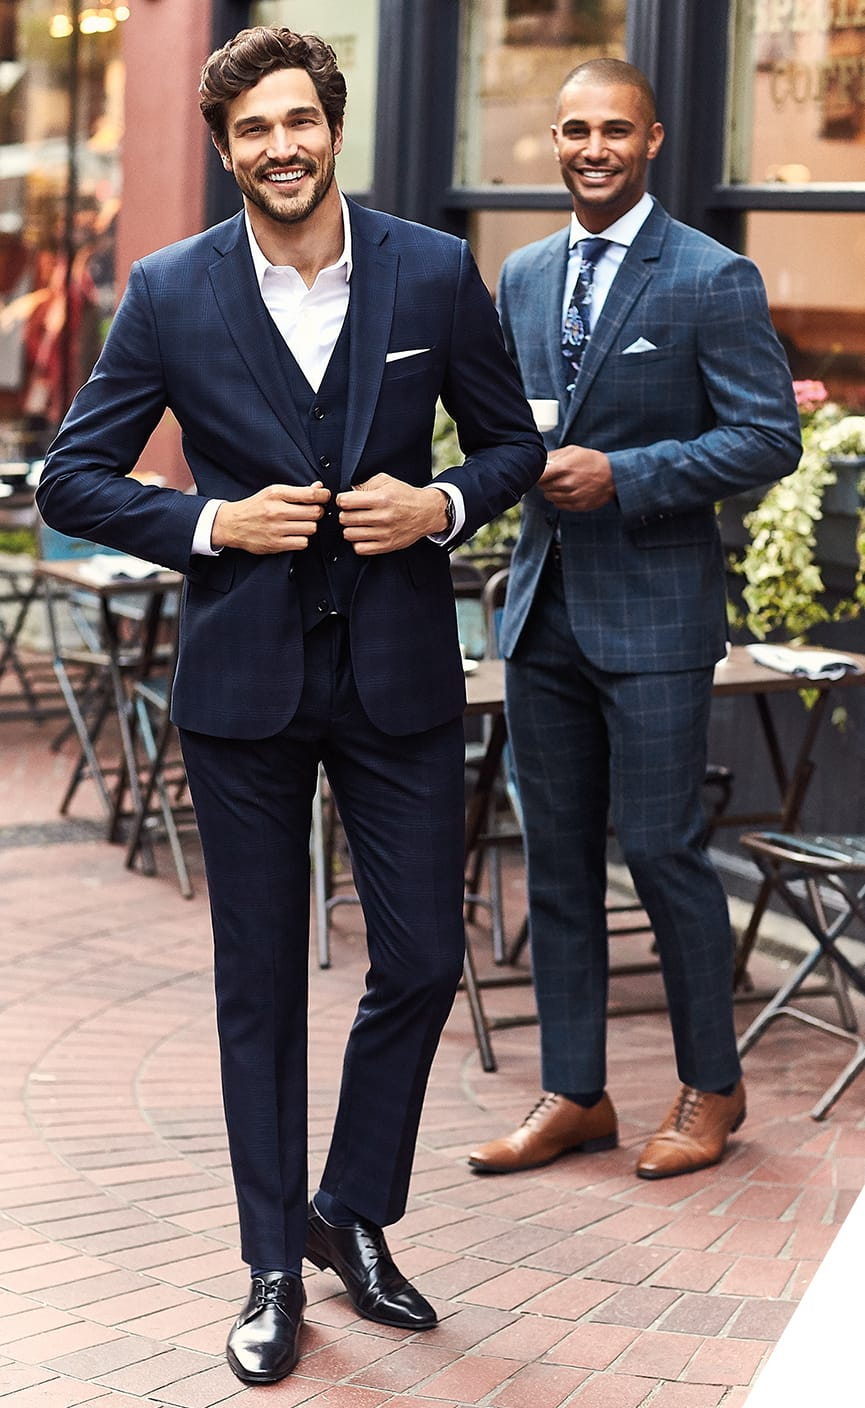 Men's suiting